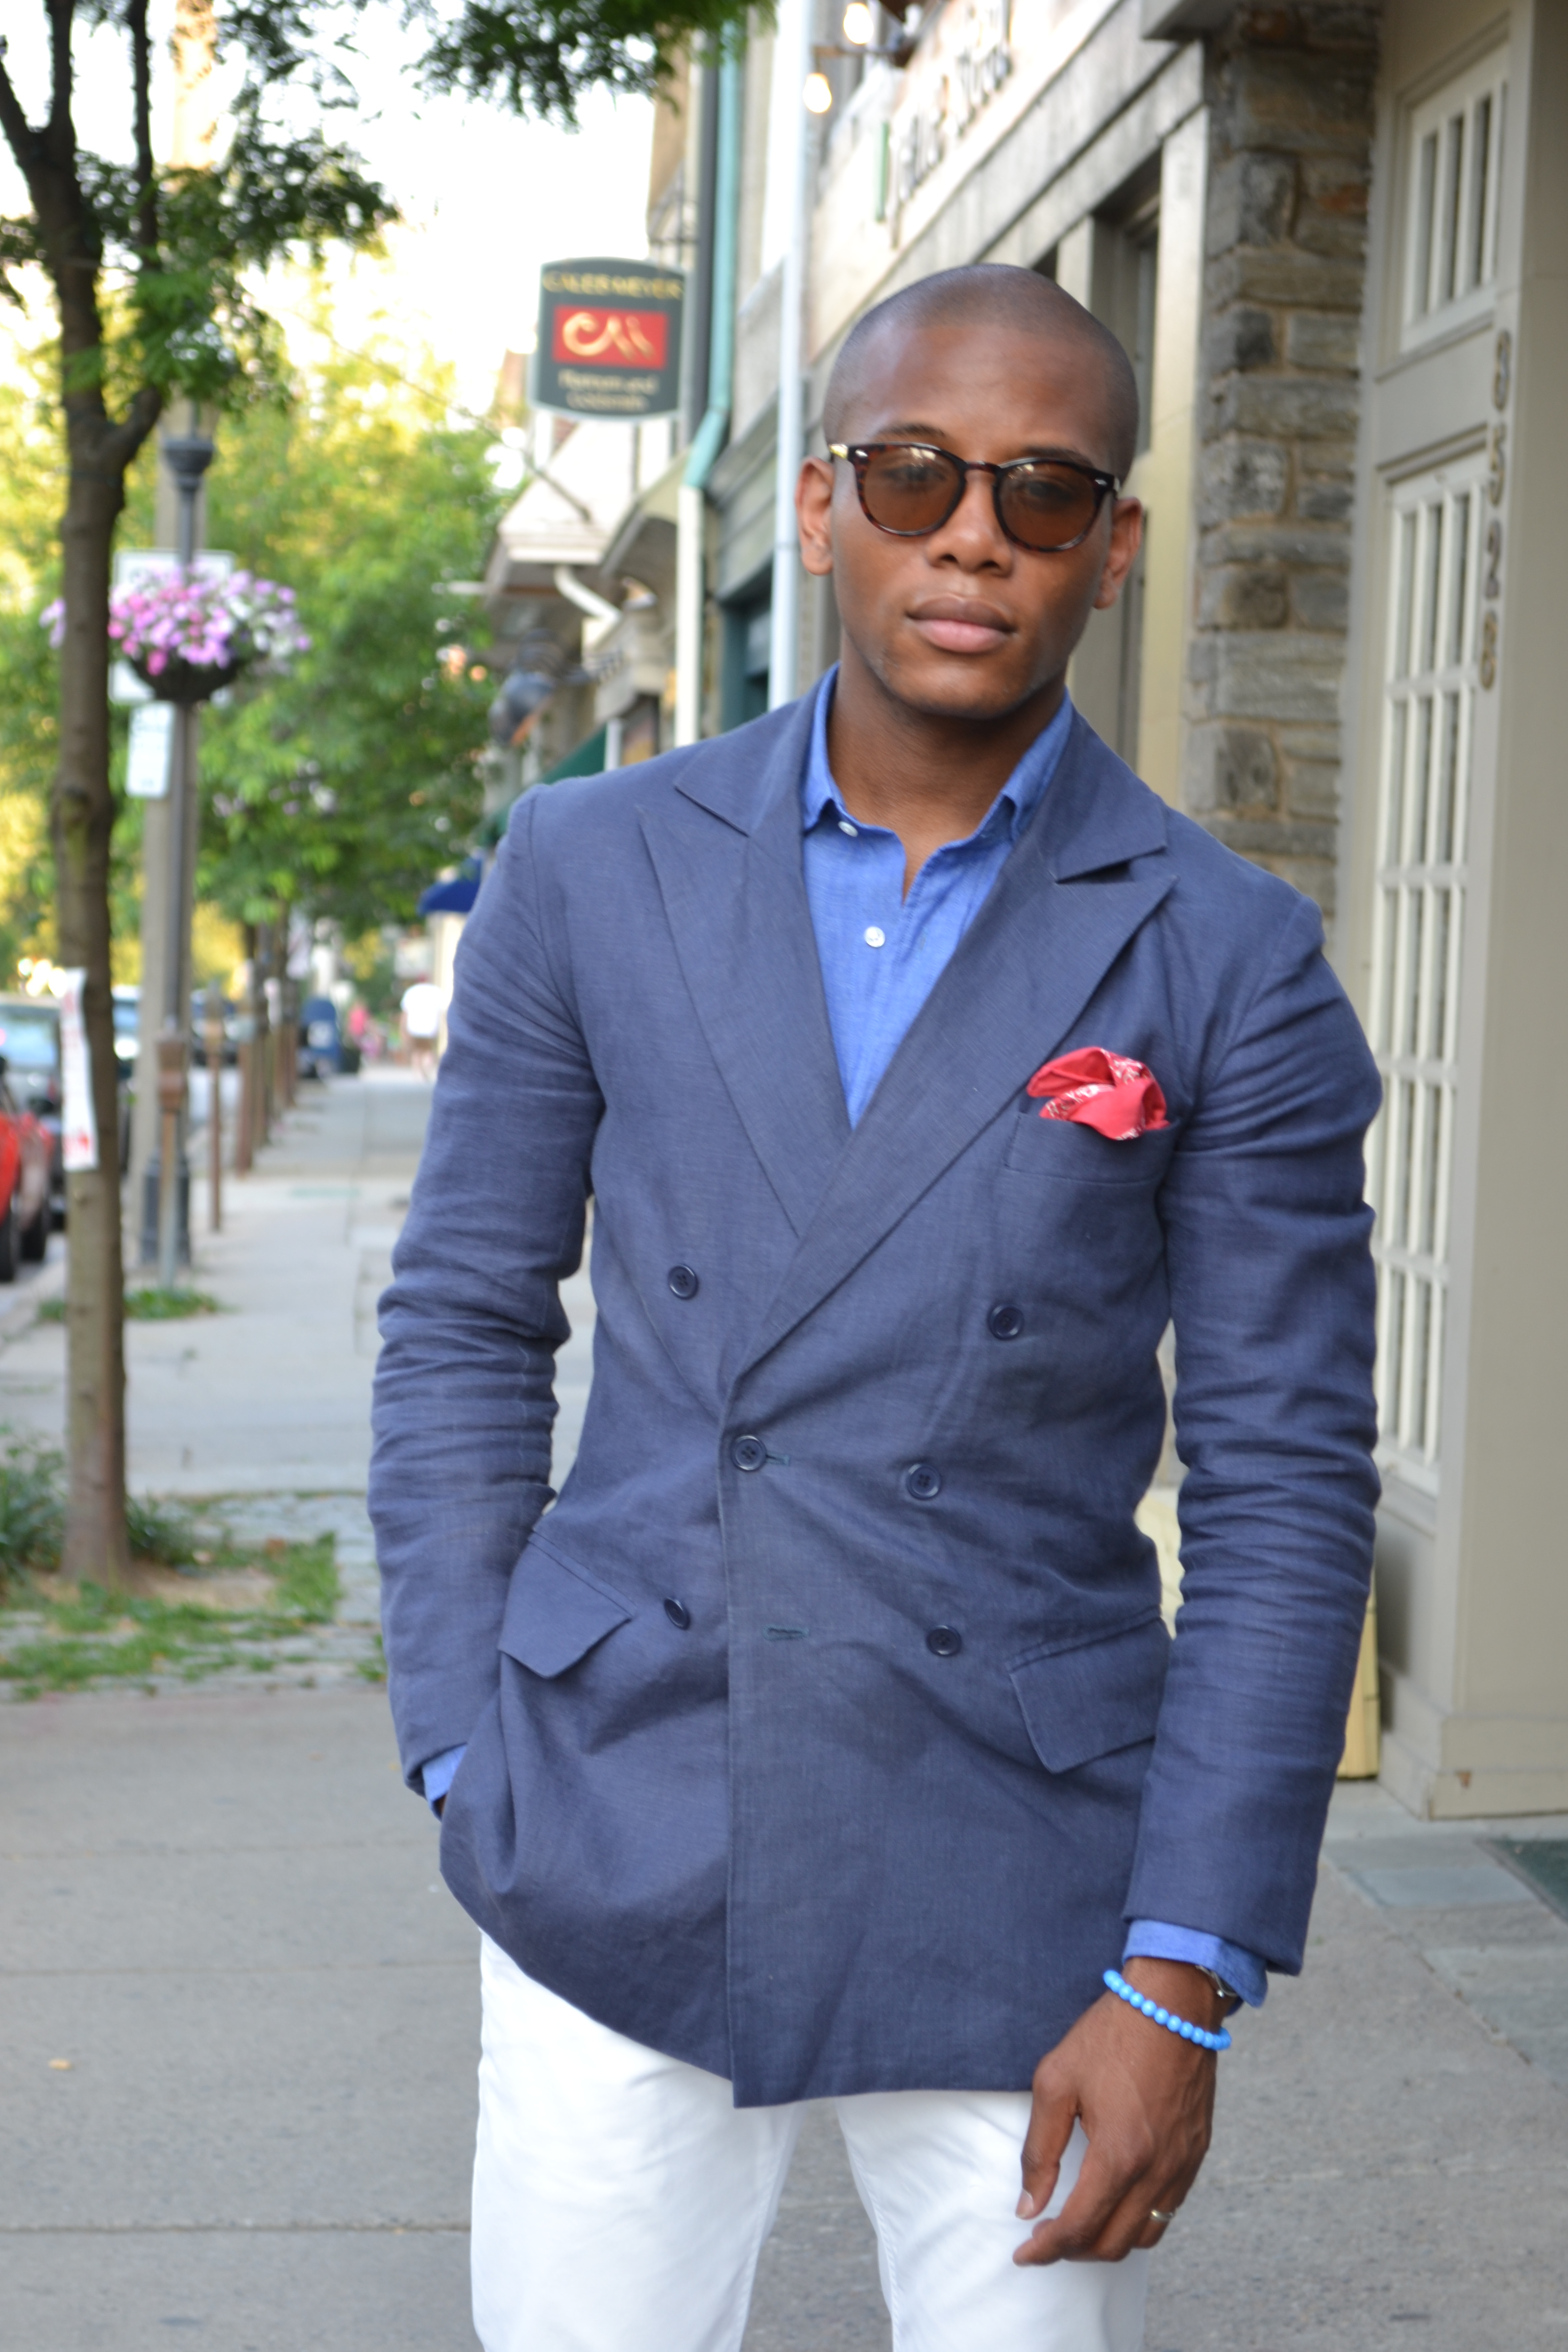 How To: Red, White & Blue | Men's Style Pro